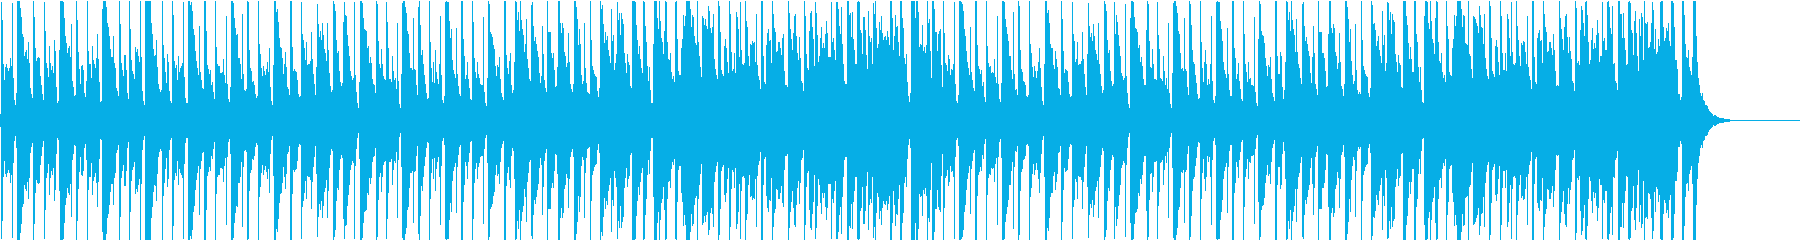 Orchestra tango with a sense of fun's reproduced waveform